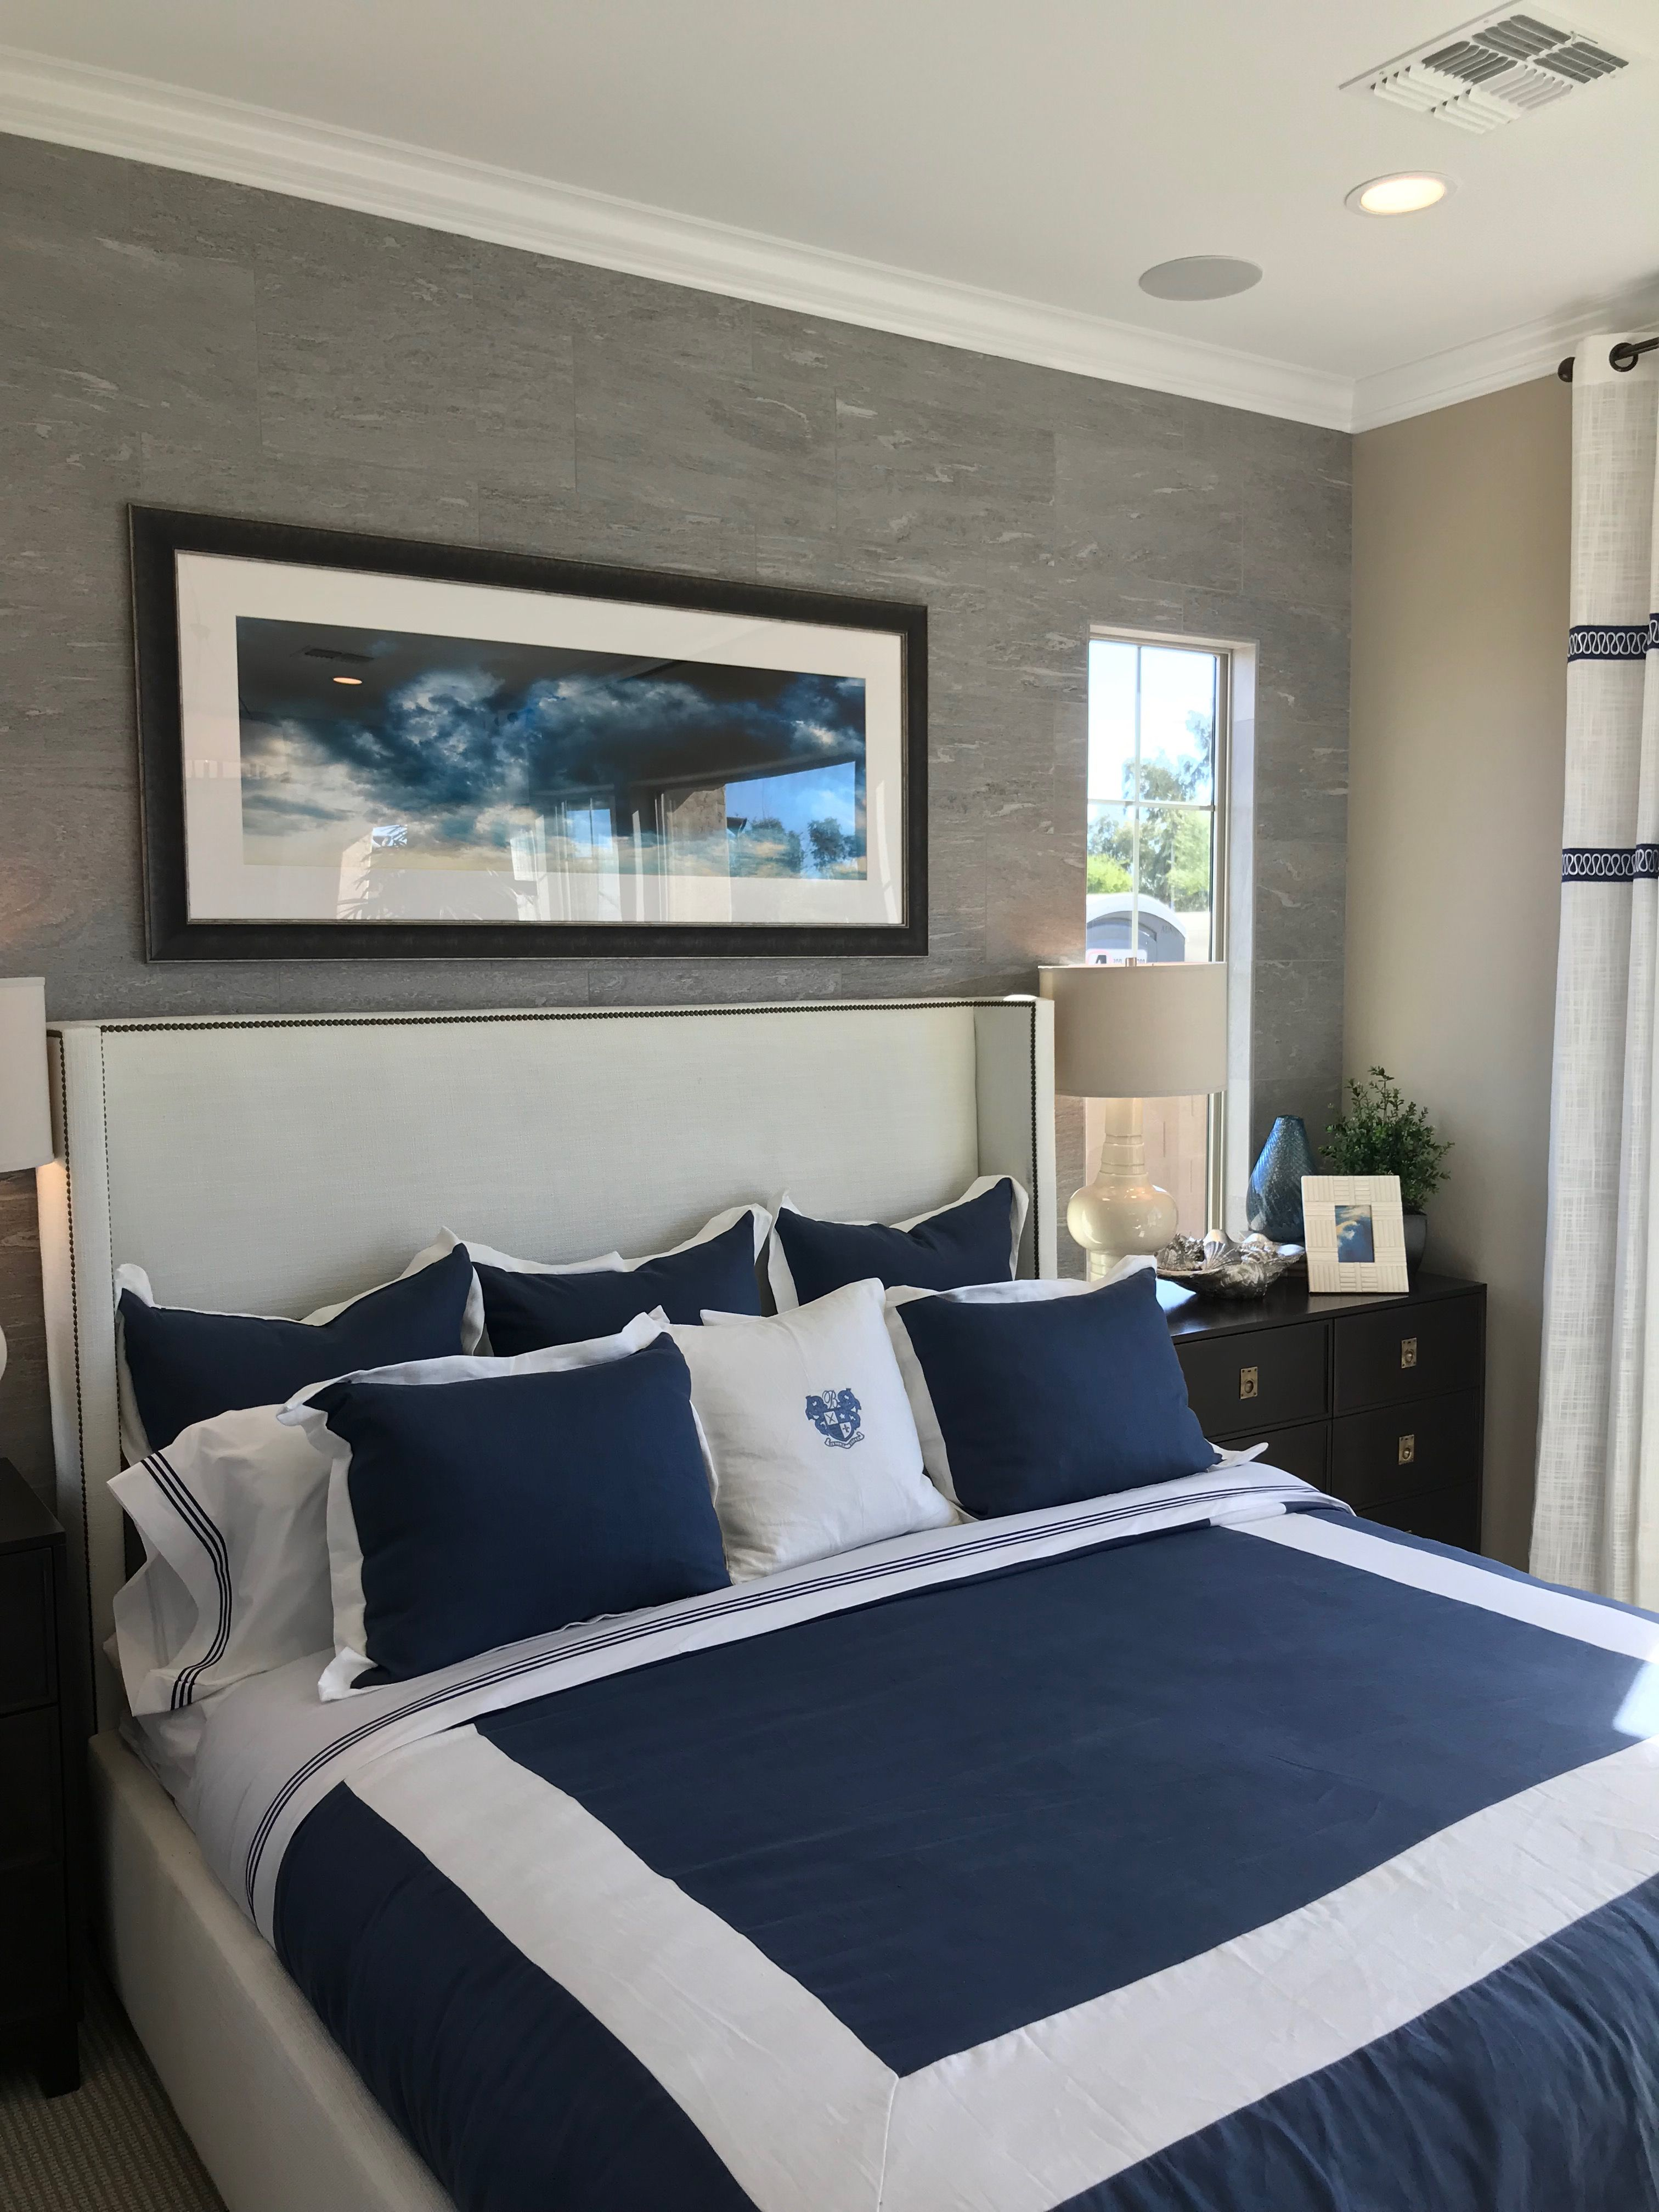 Master Bedroom with great navy and white bedding. I think